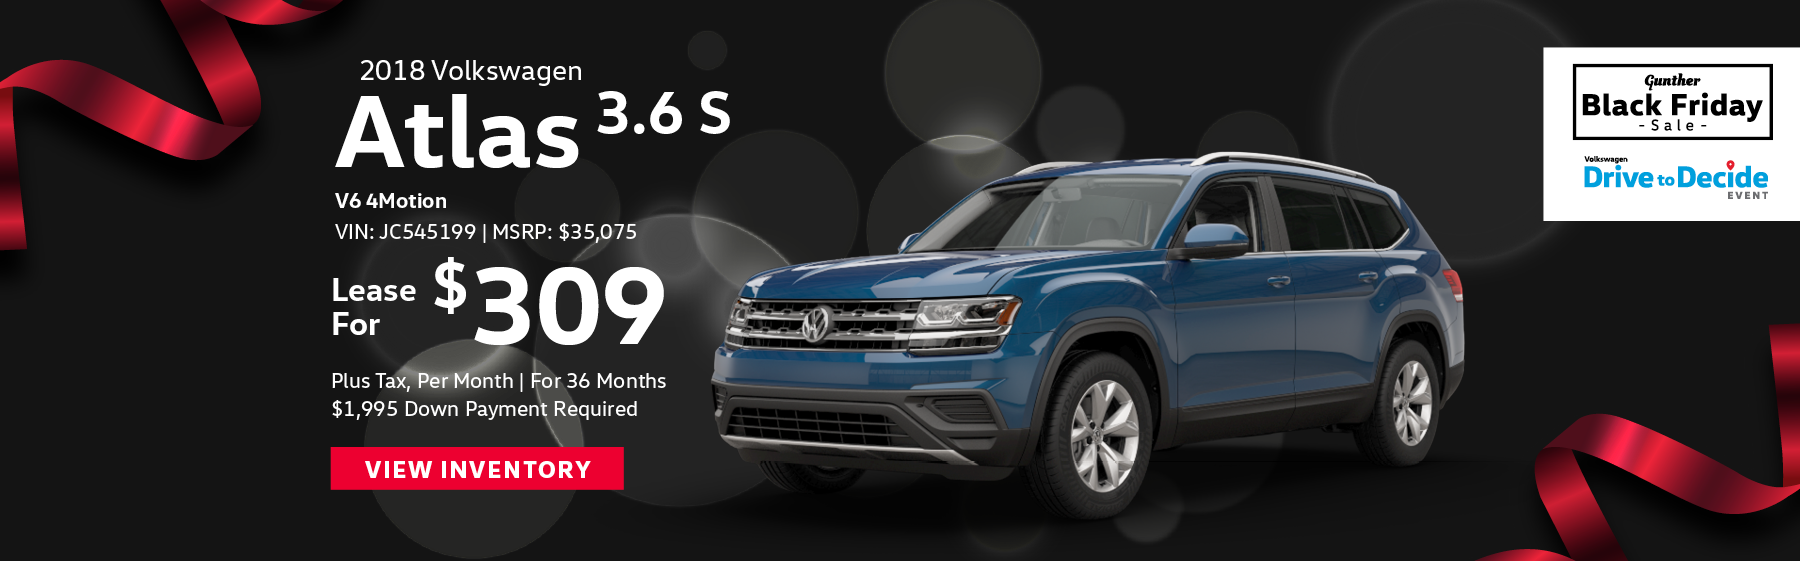 Lease the 2018 Volkswagen Atlas 3.6 S for $309 per month, plus tax for 36 months. Click here to view inventory.